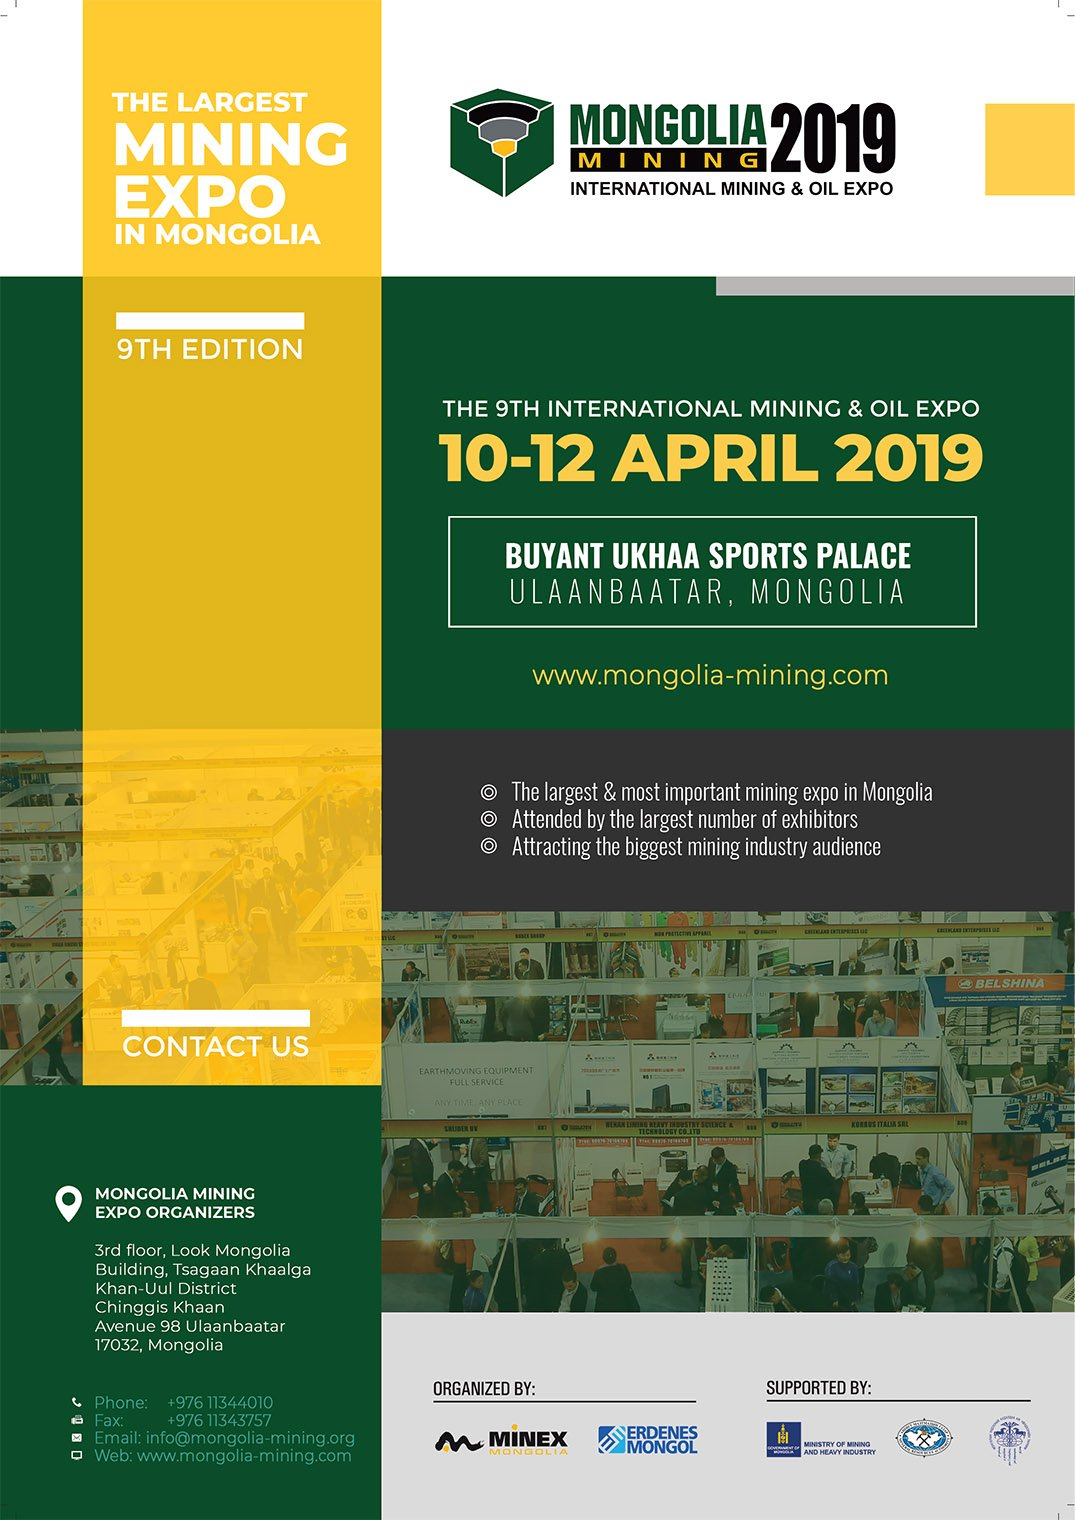 Mongolia Mining 2019 focusing on responsible mining